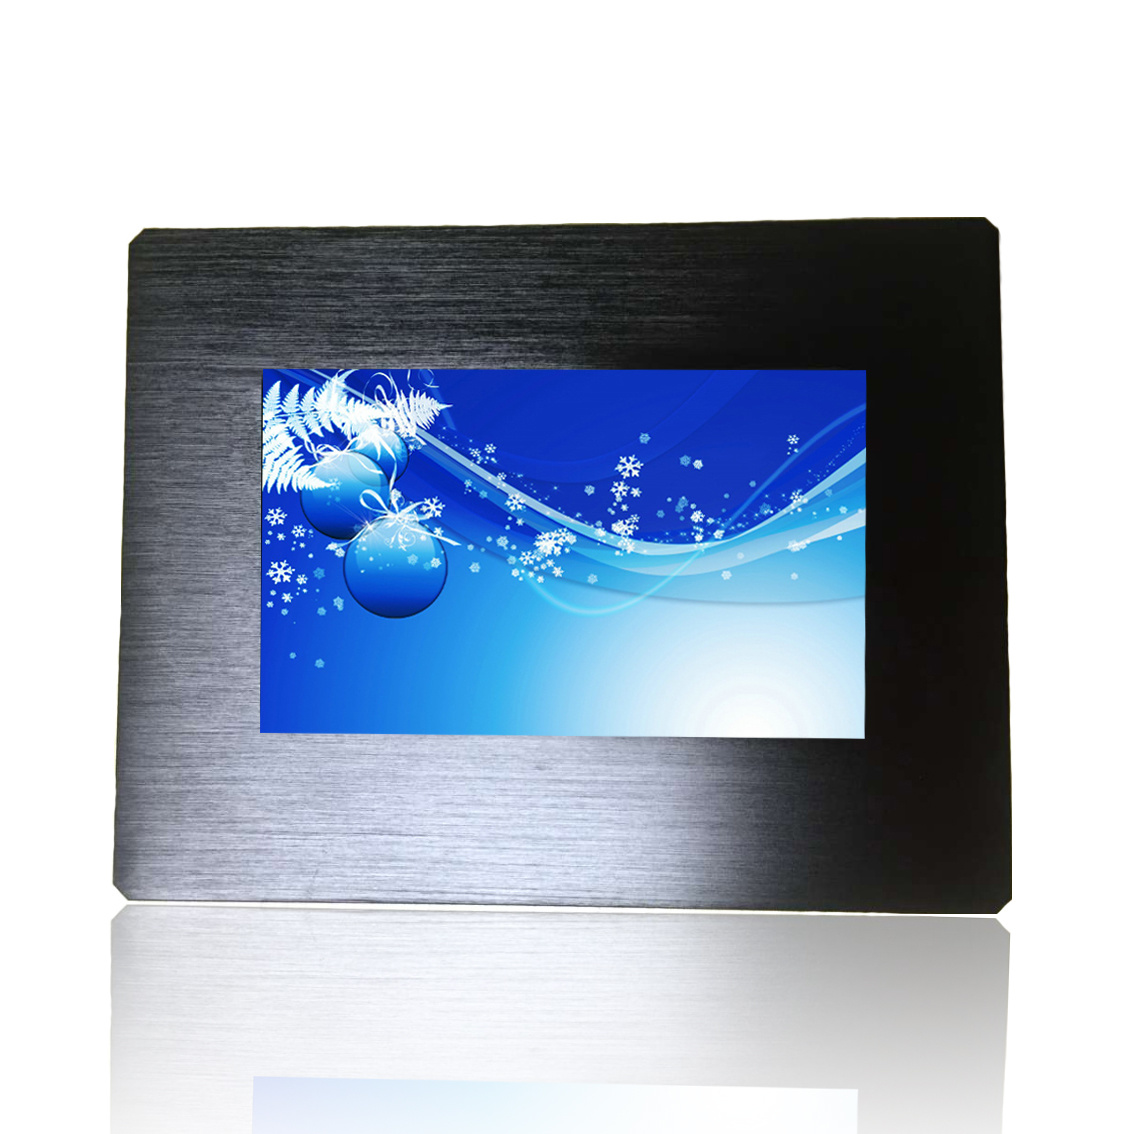 10 Inches Rugged Embedded Touch Industrial Monitor